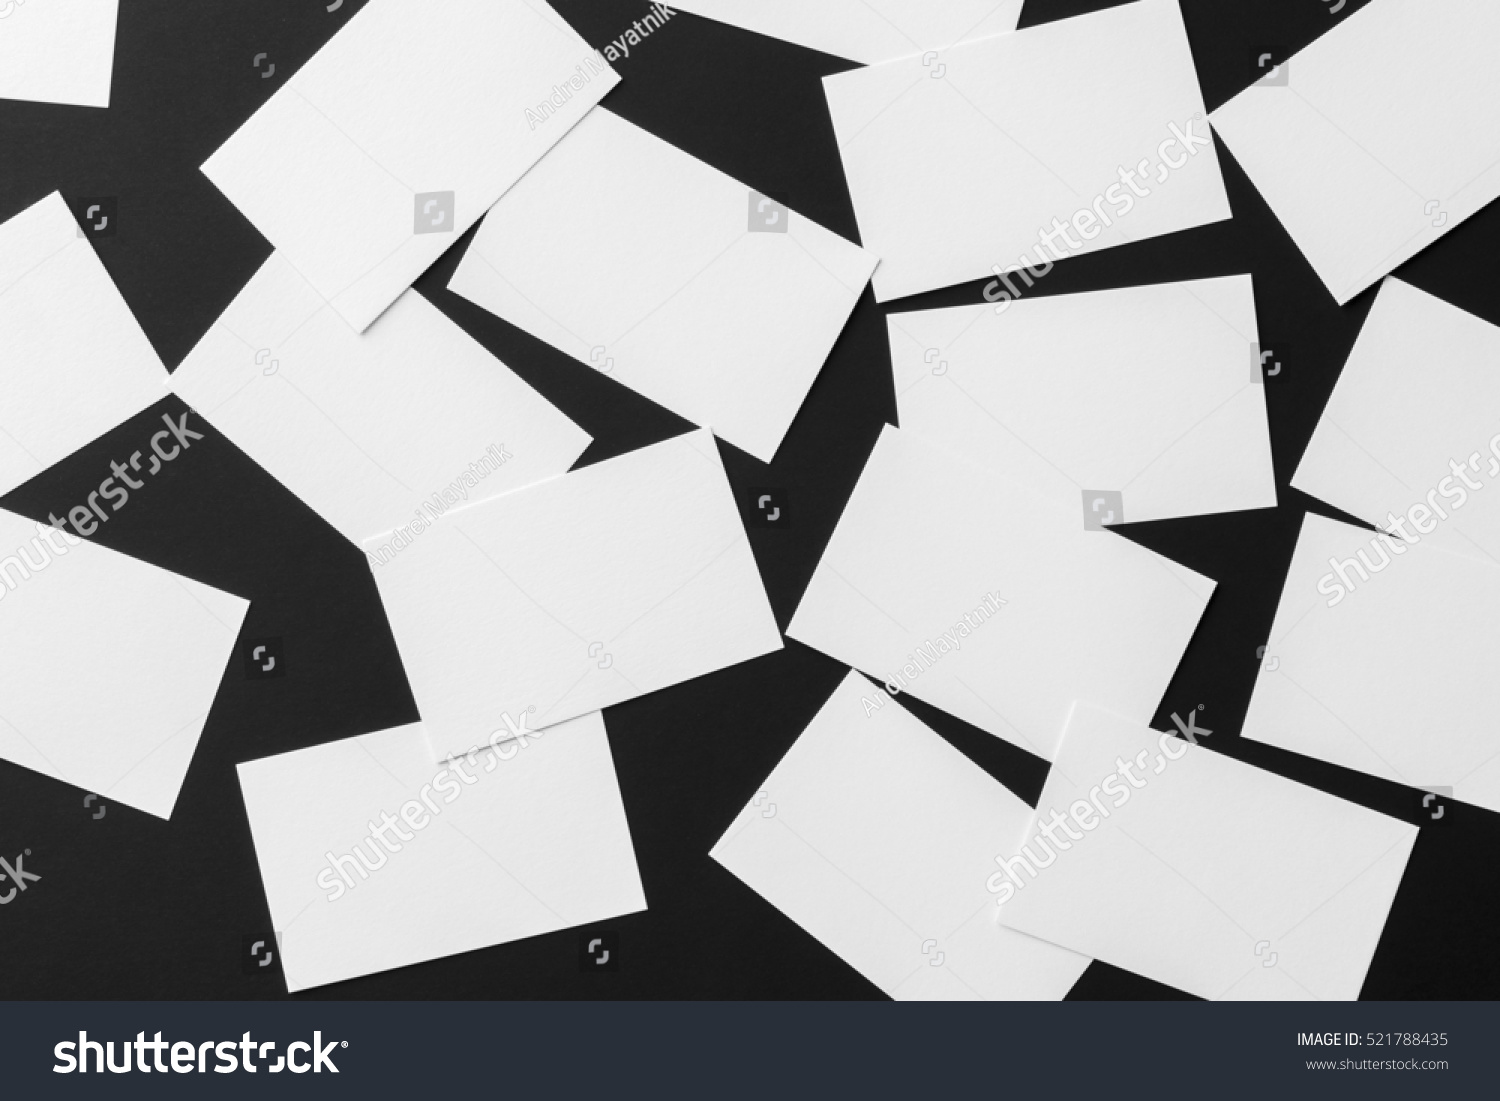 Mockup Scattered White Business Cards Stacks Stock Photo (Royalty ...